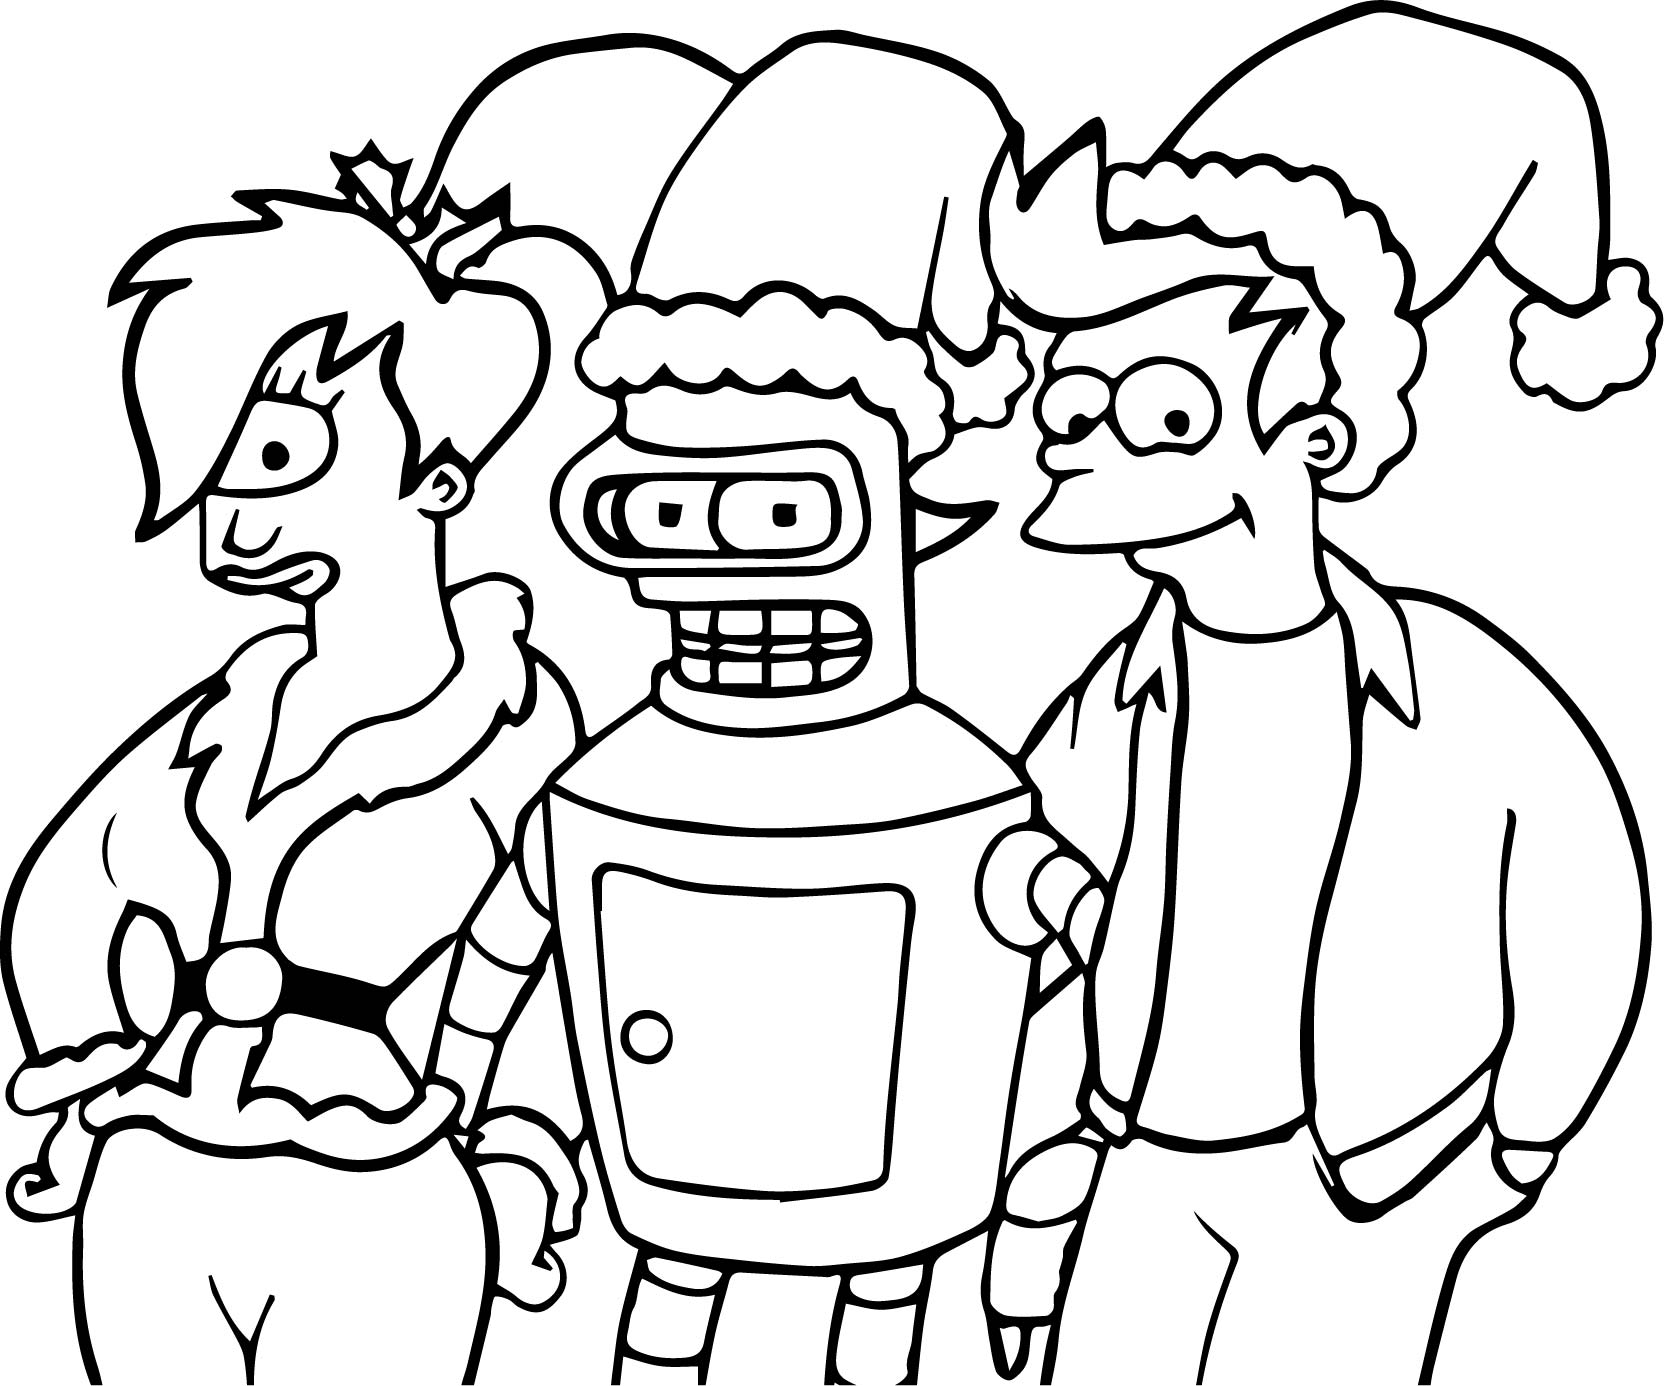 Anime Robot One Eye Girl And Boy Coloring Page Wecoloringpage